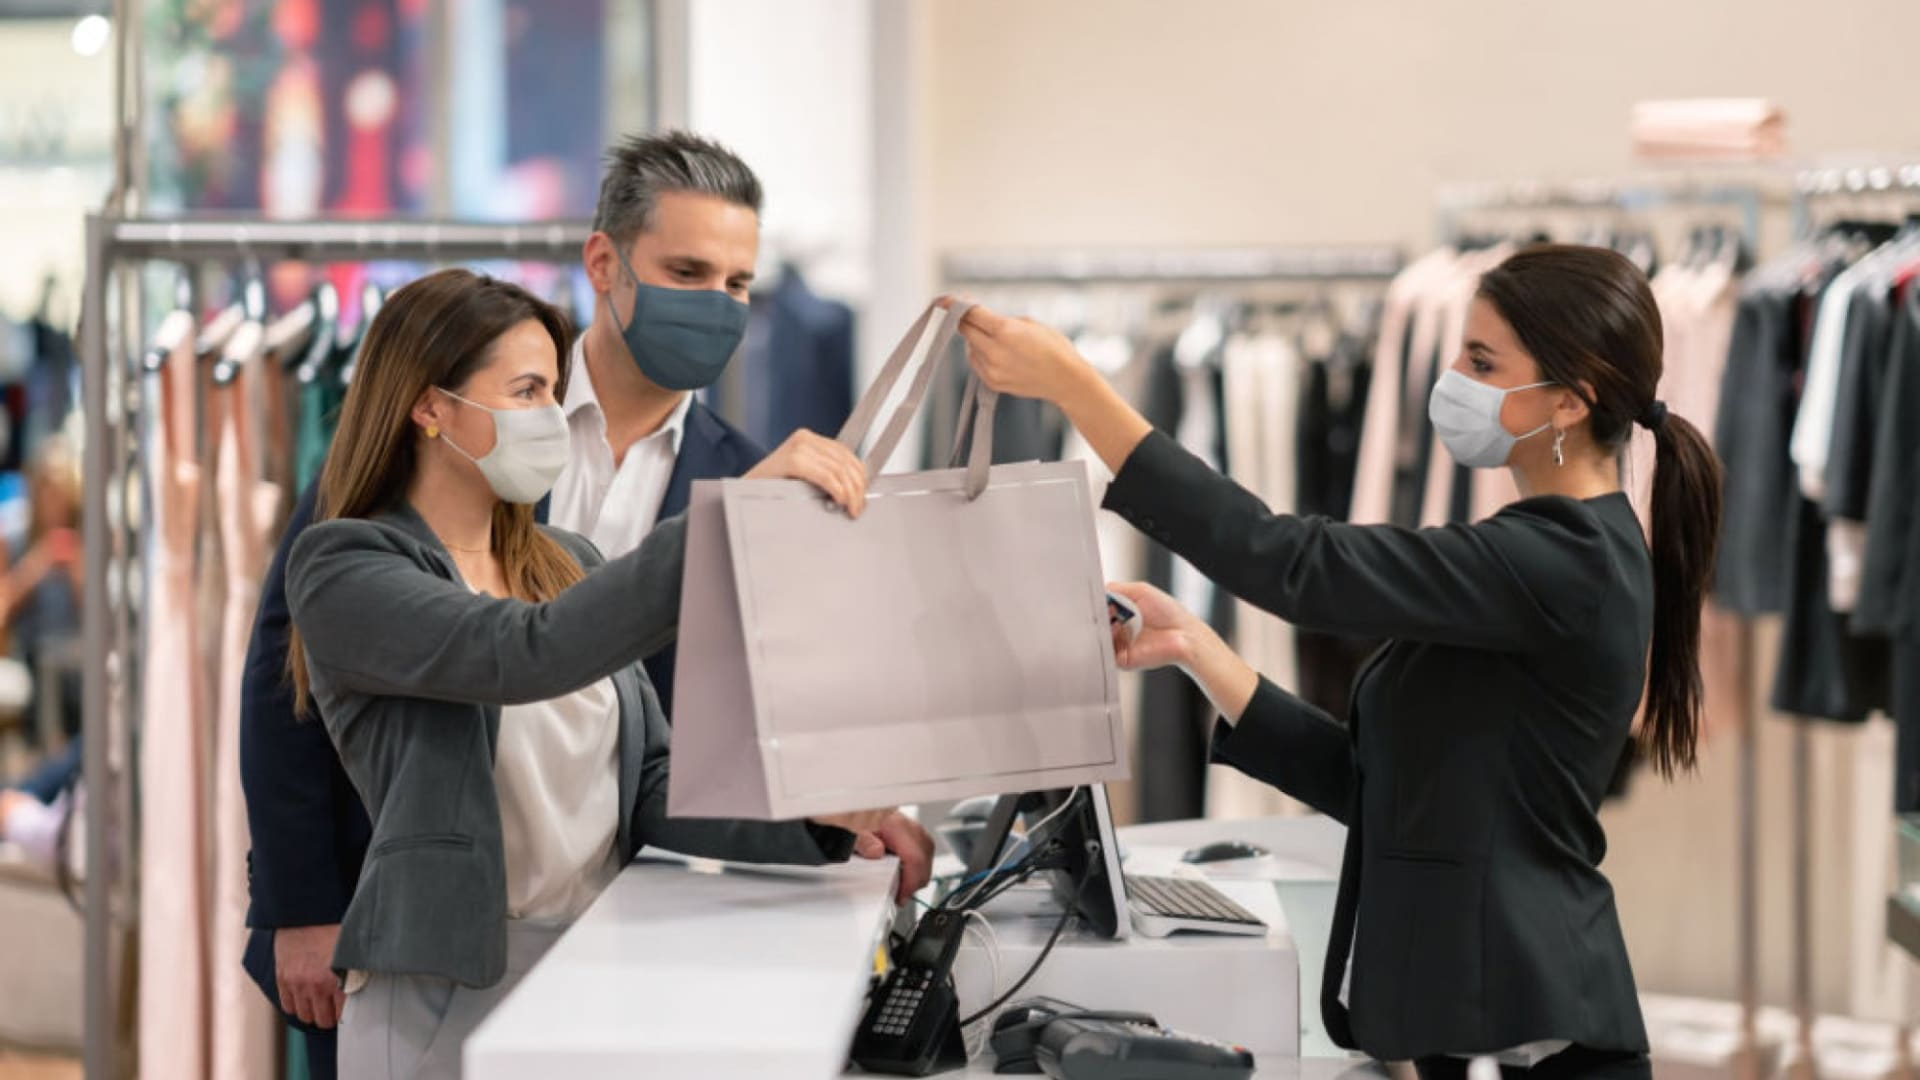 4 Ways to Maintain a Cleaner Shopping Environment